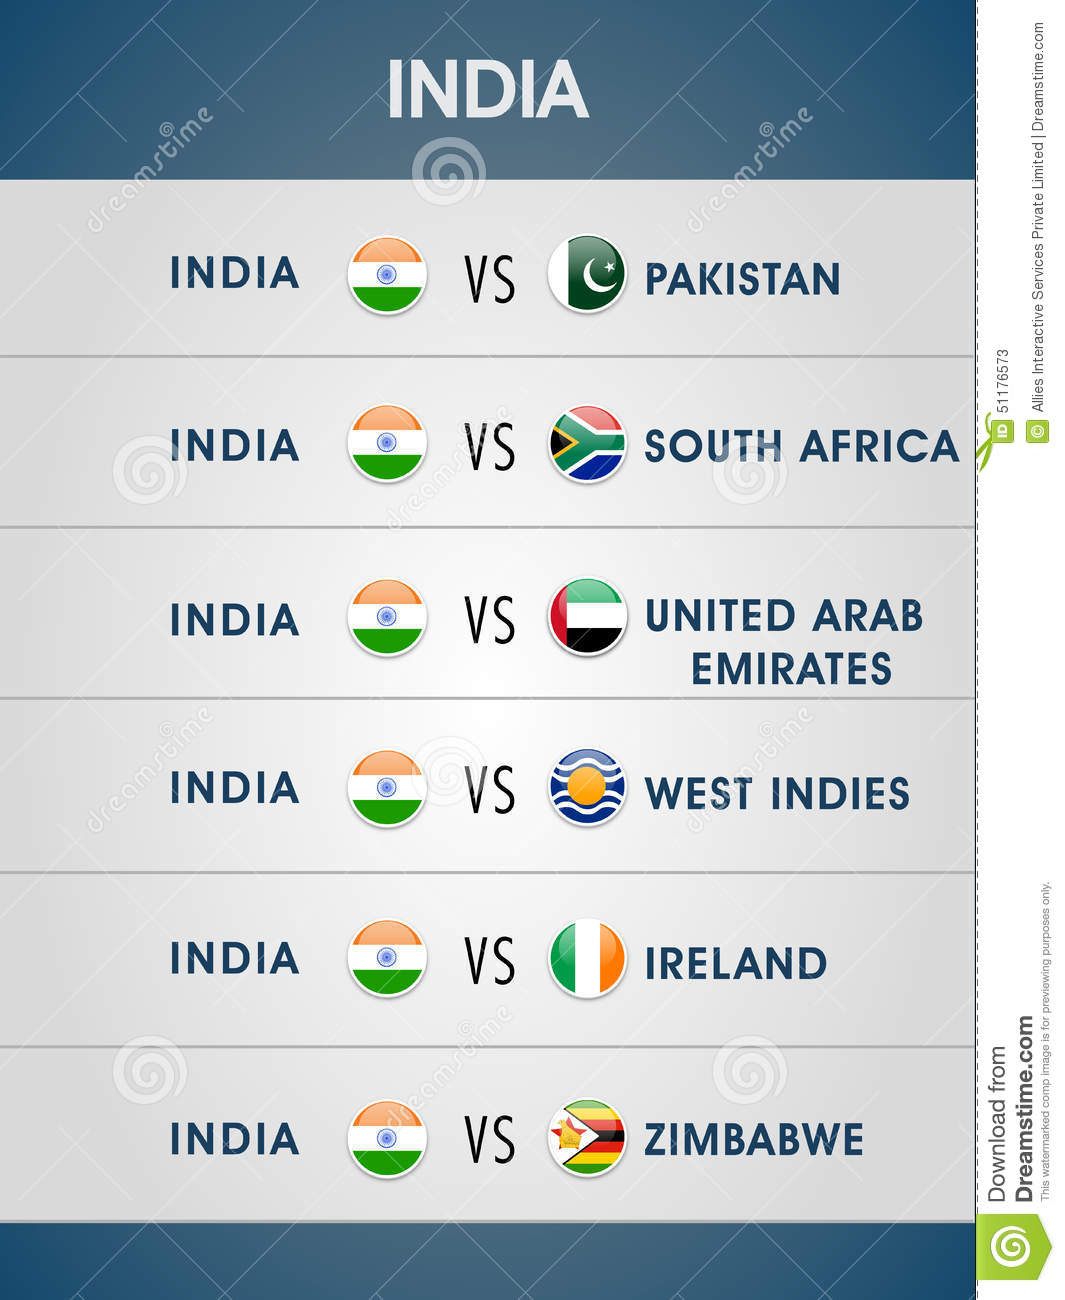 Cricket World Cup 2015 Matches Schedule Stock Illustration